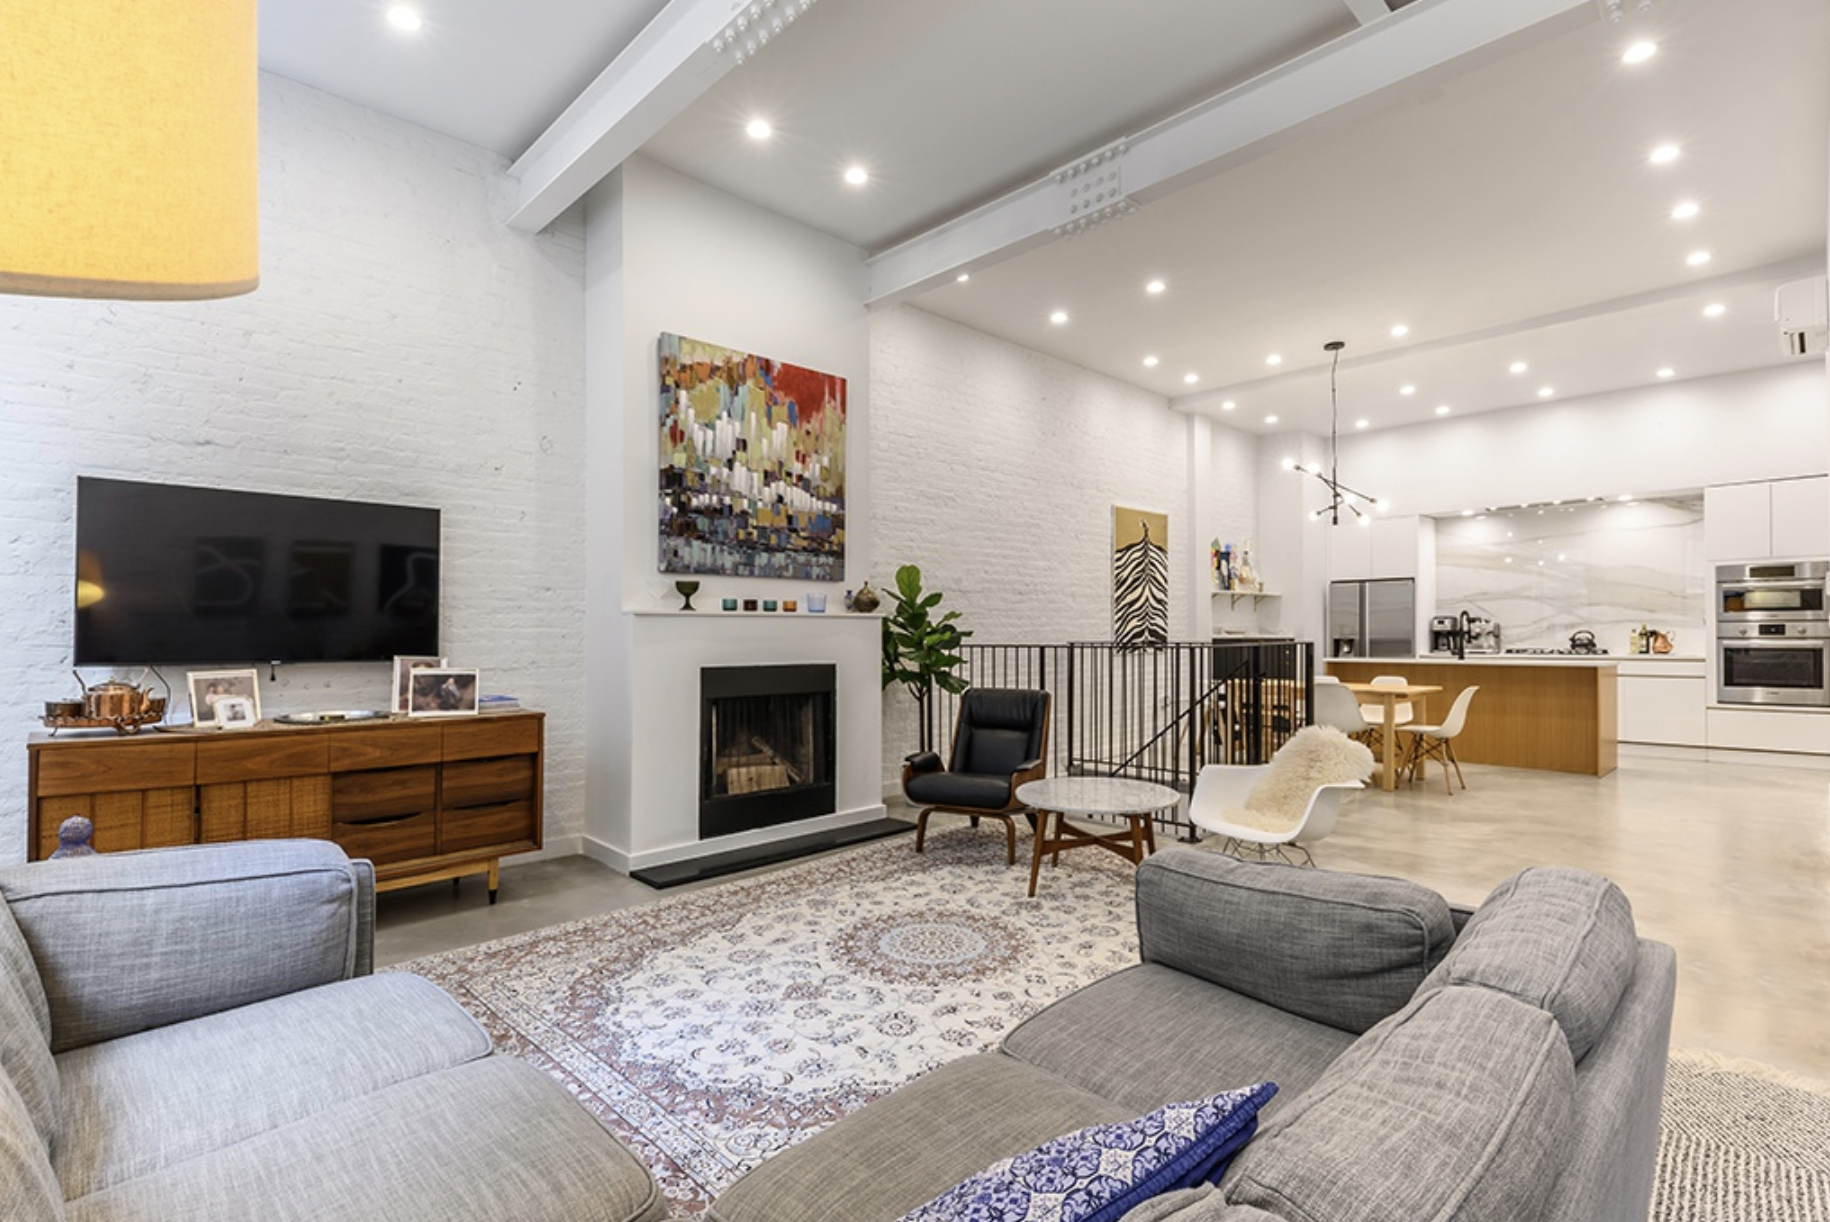 159 CARLTON AVENUE, 1C - $2,399,000 // 2 Beds // 2 Baths // 1,705 SQFTA gut-renovated duplex condo nestled just a block from Fort Greene Park, this stunning home features polished concrete and engineered oak flooring, 12' ceiling height, brand new aluminum sash windows, veneered solid core wood doors with hidden EZ jambs, whitewashed brick walls and exposed I-beams, a ducted wood-burning fireplace, a Mitsubishi split-system with Hyper Heat Technology, Lutron lighting, a Finnish-style sauna with red oak, and a stacked washer/dryer.